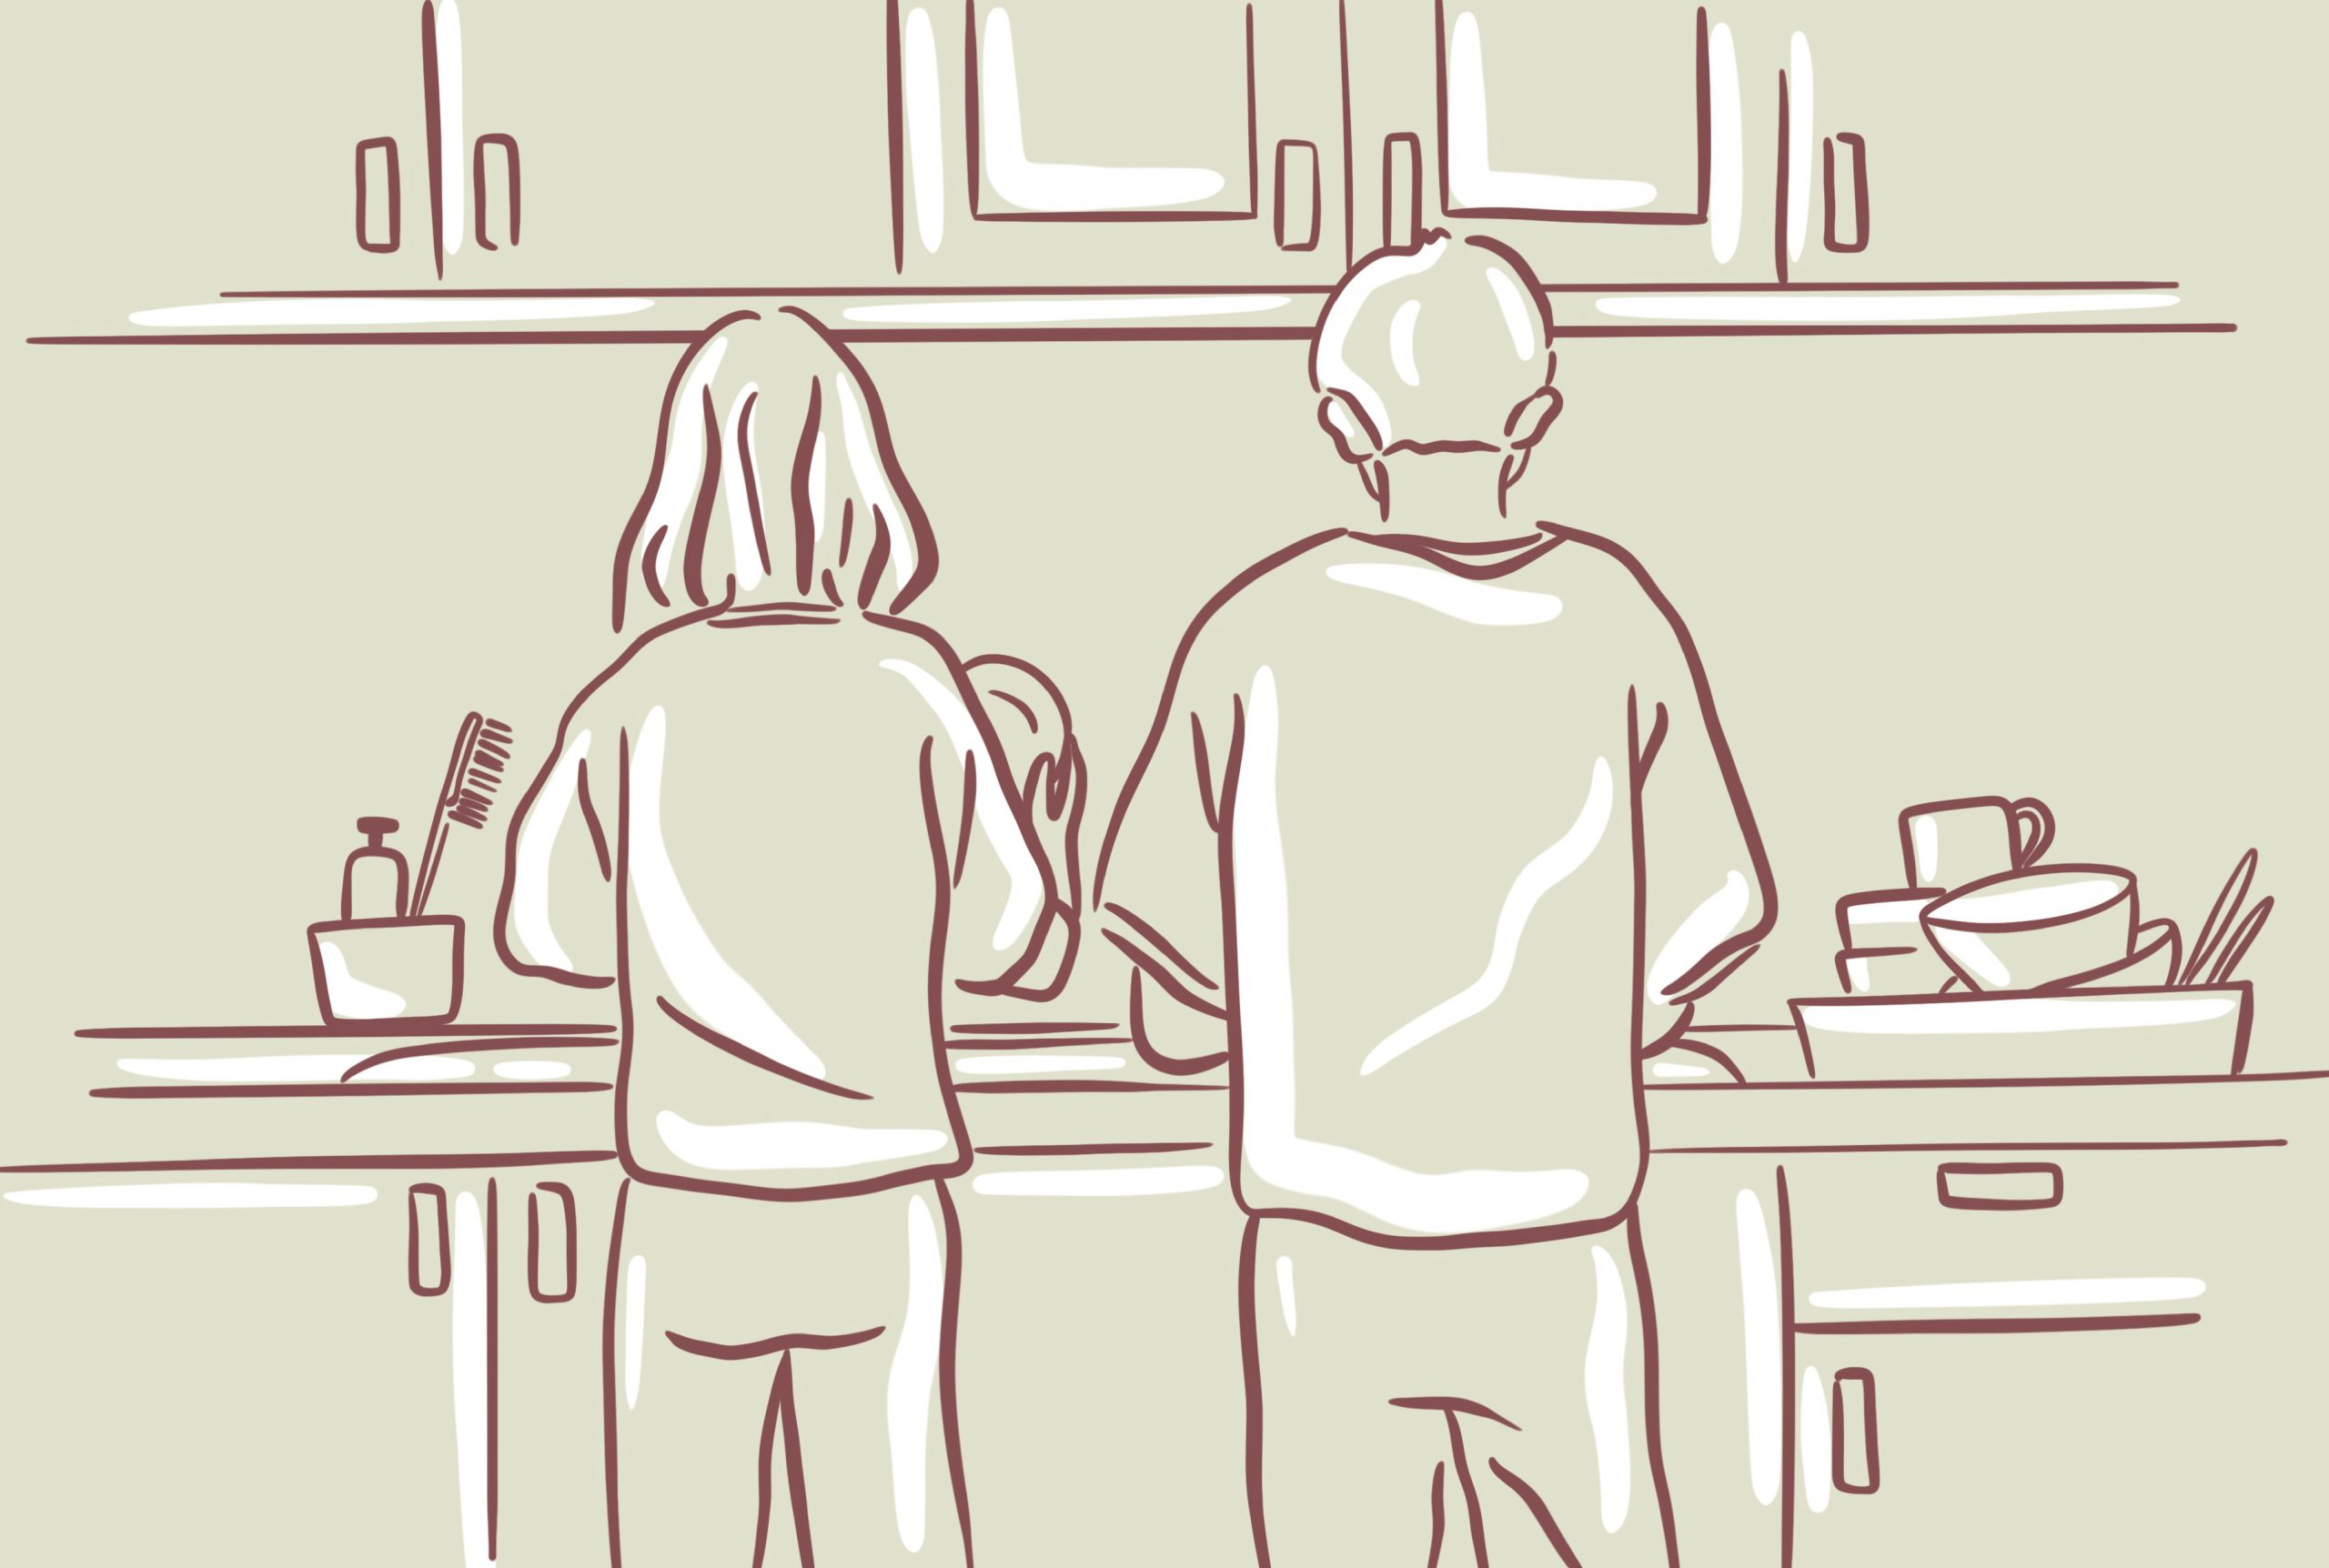 An illustration of a couple working together in the kitchen.